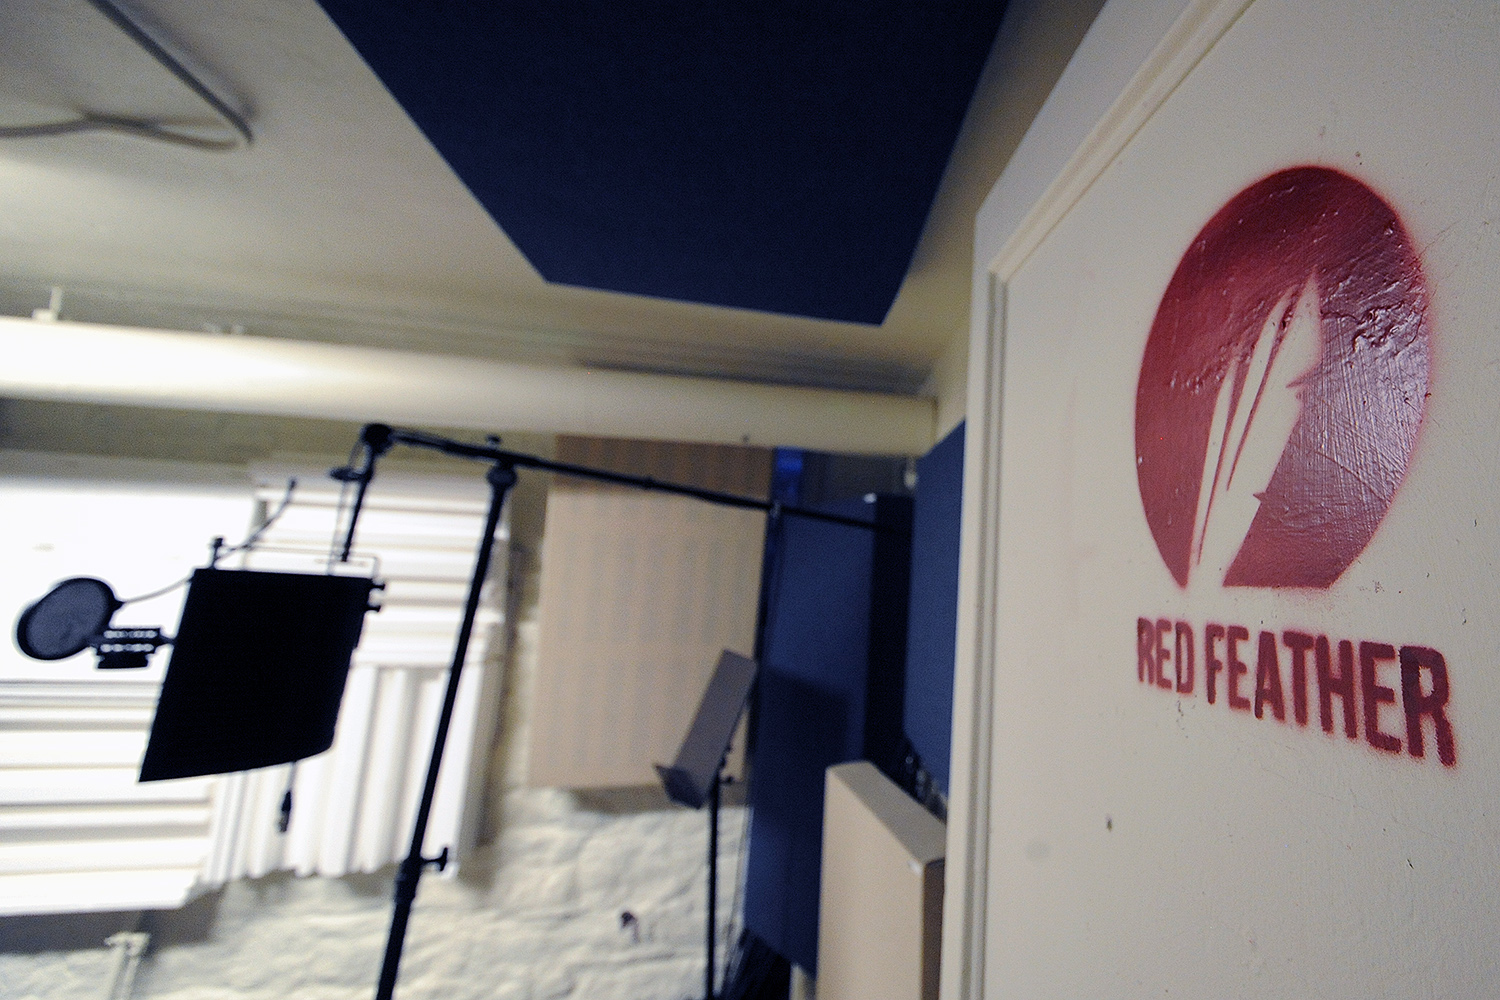 Red Feather's physical facility was built over the course of a year in three basement rooms in the University Organizing Center previously used for storage.